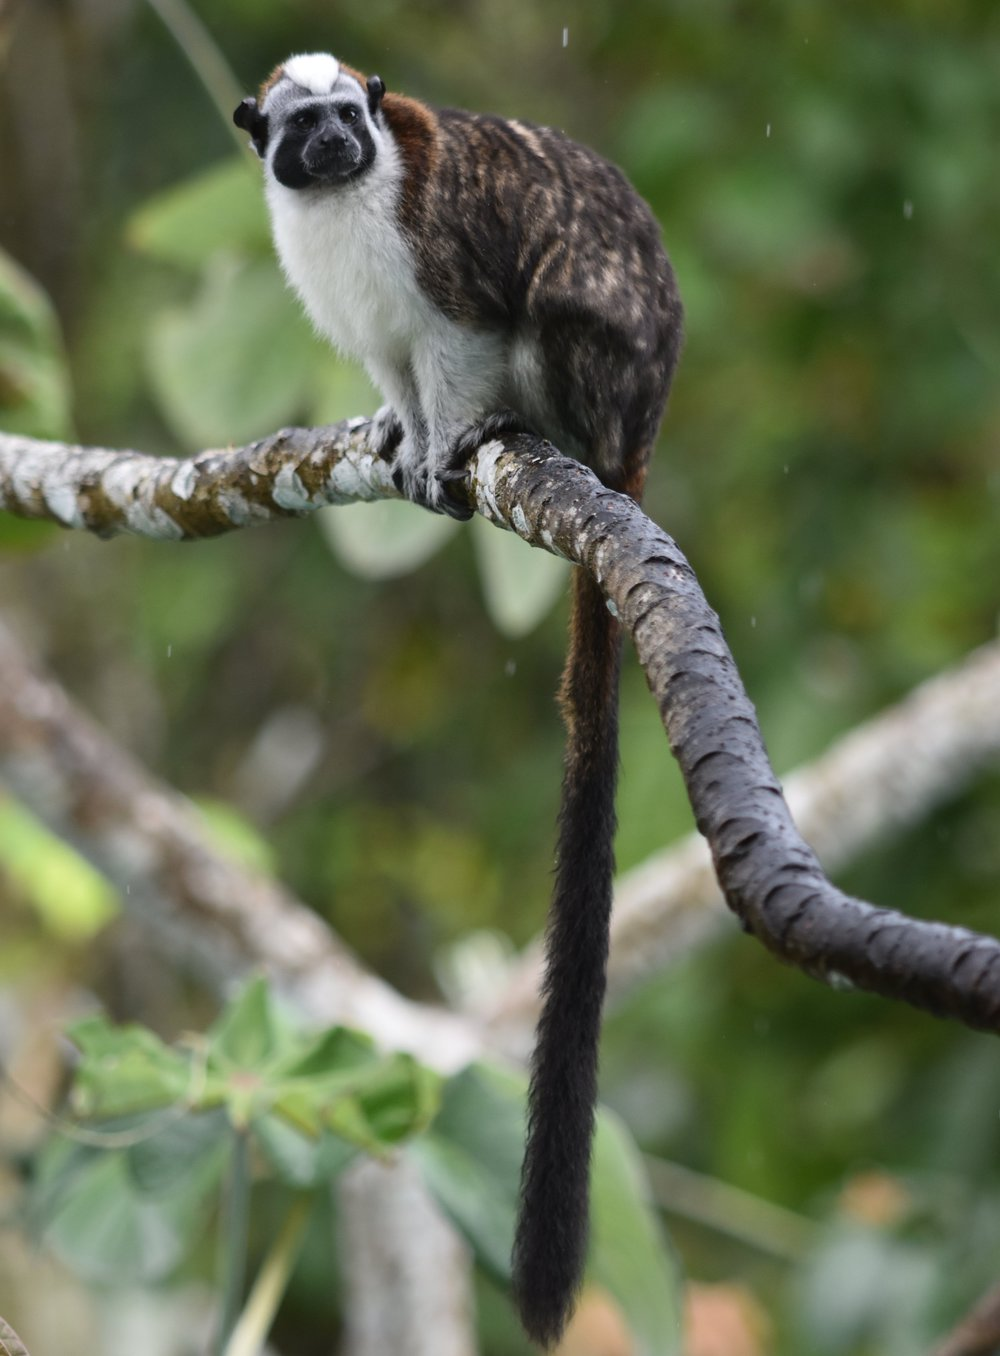 Geoffroy's Tamarin monkey, photo by Brian Moroney.